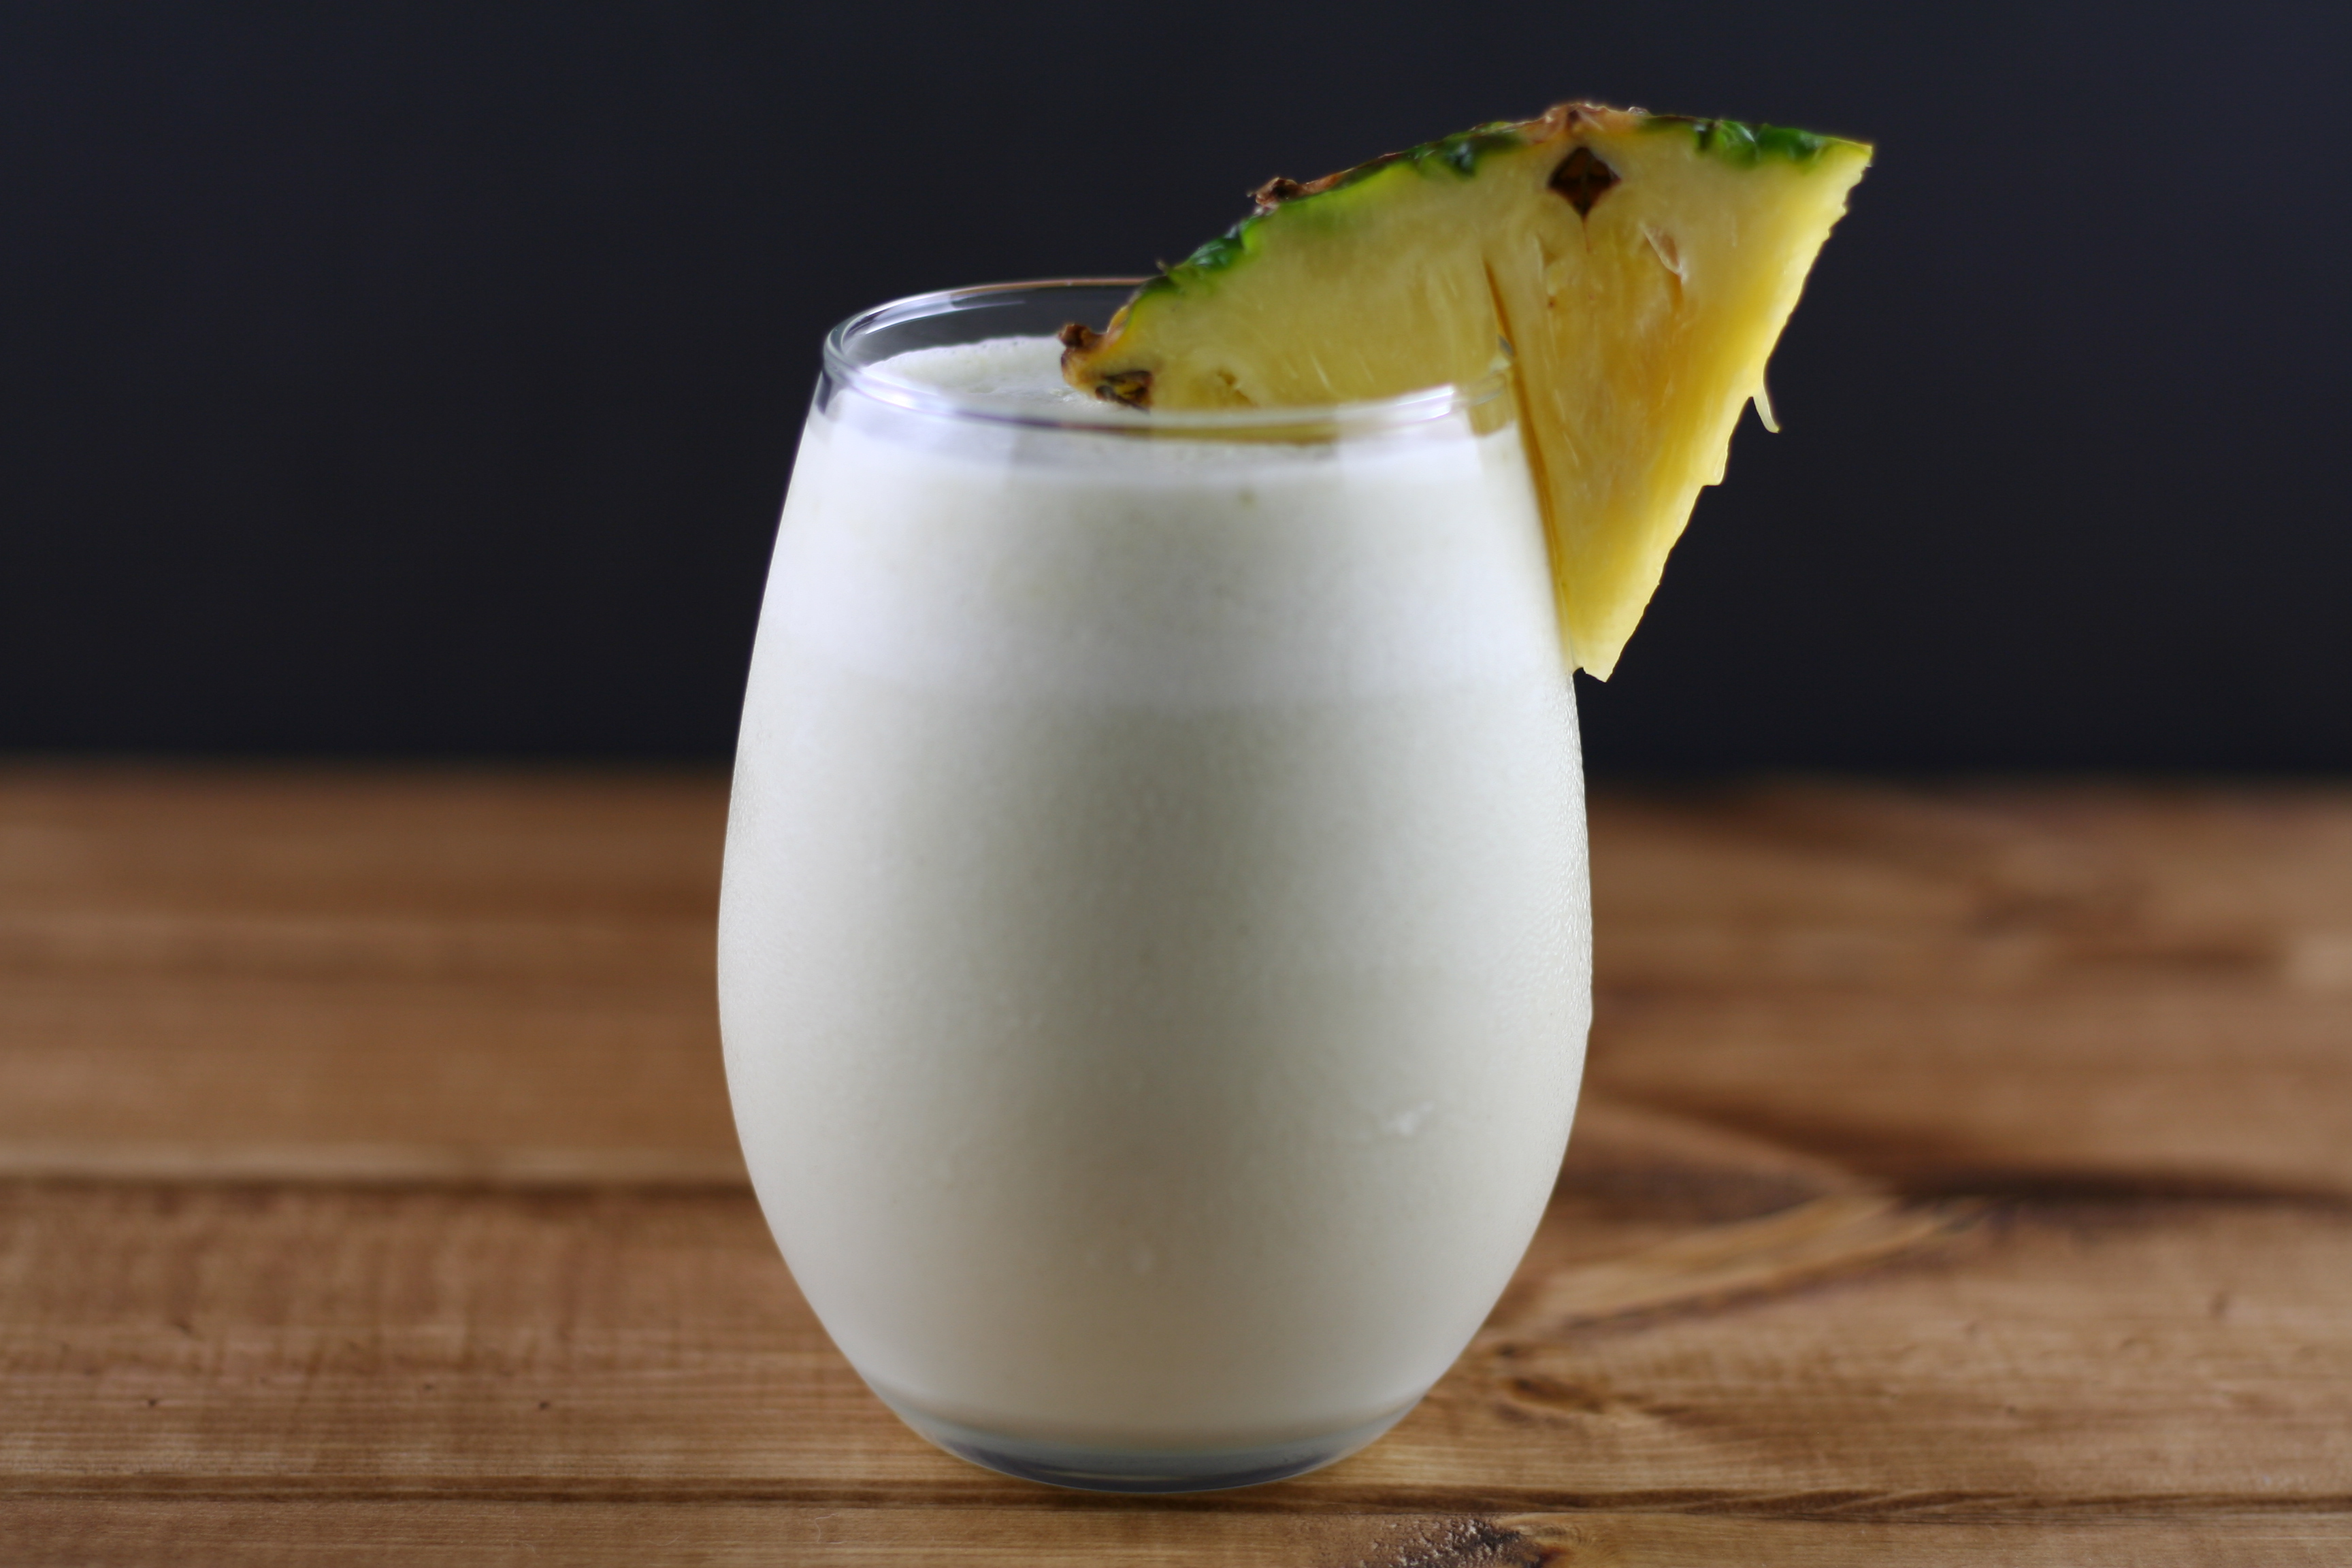 a glass of coconut pineapple matcha smoothie with a chunk of fresh pineapple stuck on the rim of the glass.